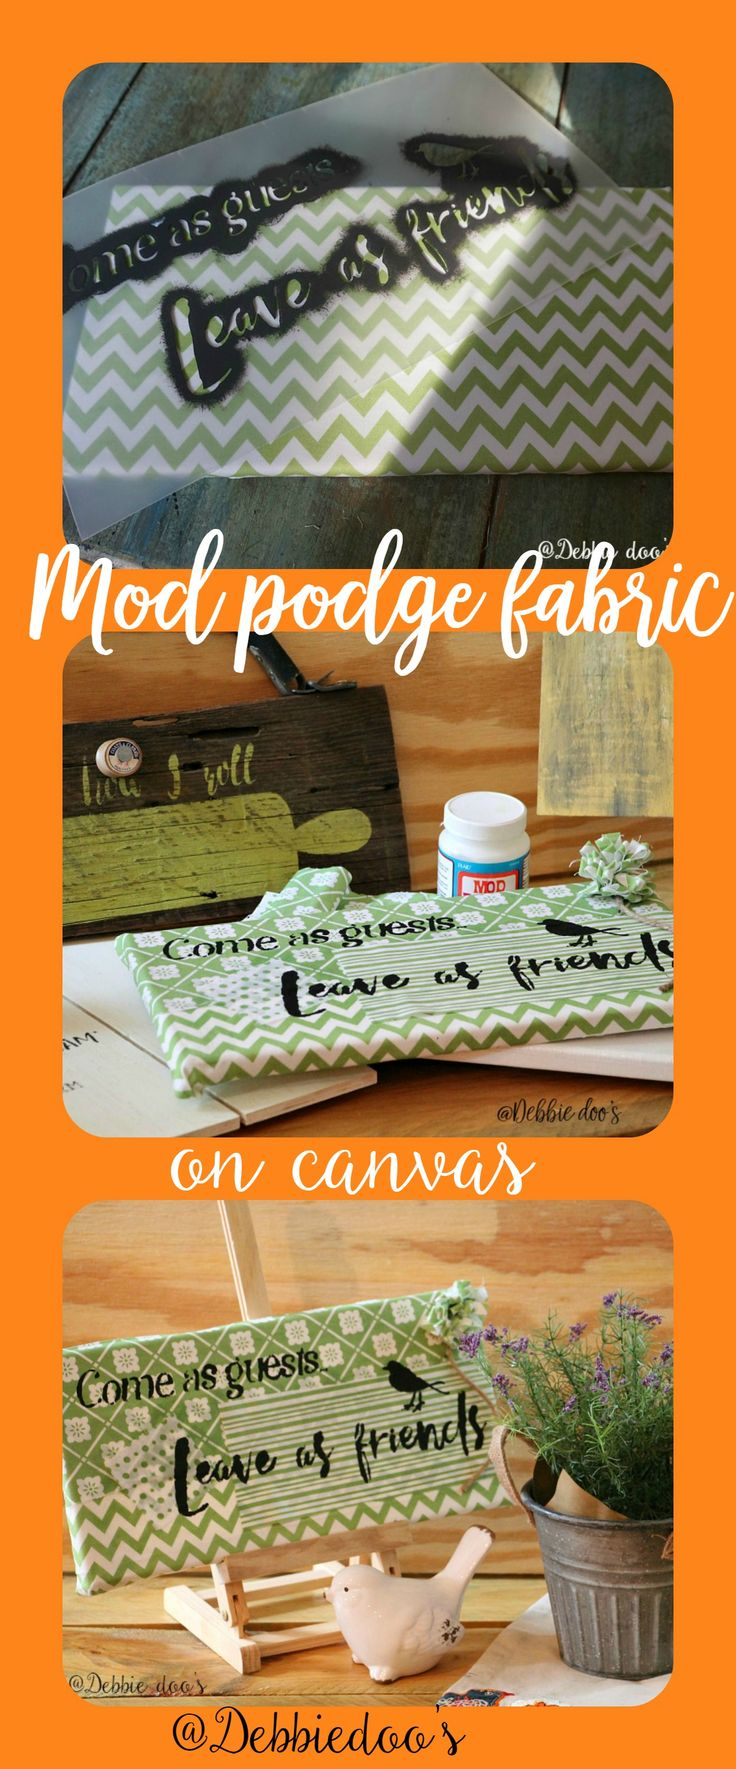 How to mod podge on canvas and make your own fun art work with a stencil @Debbiedoo's